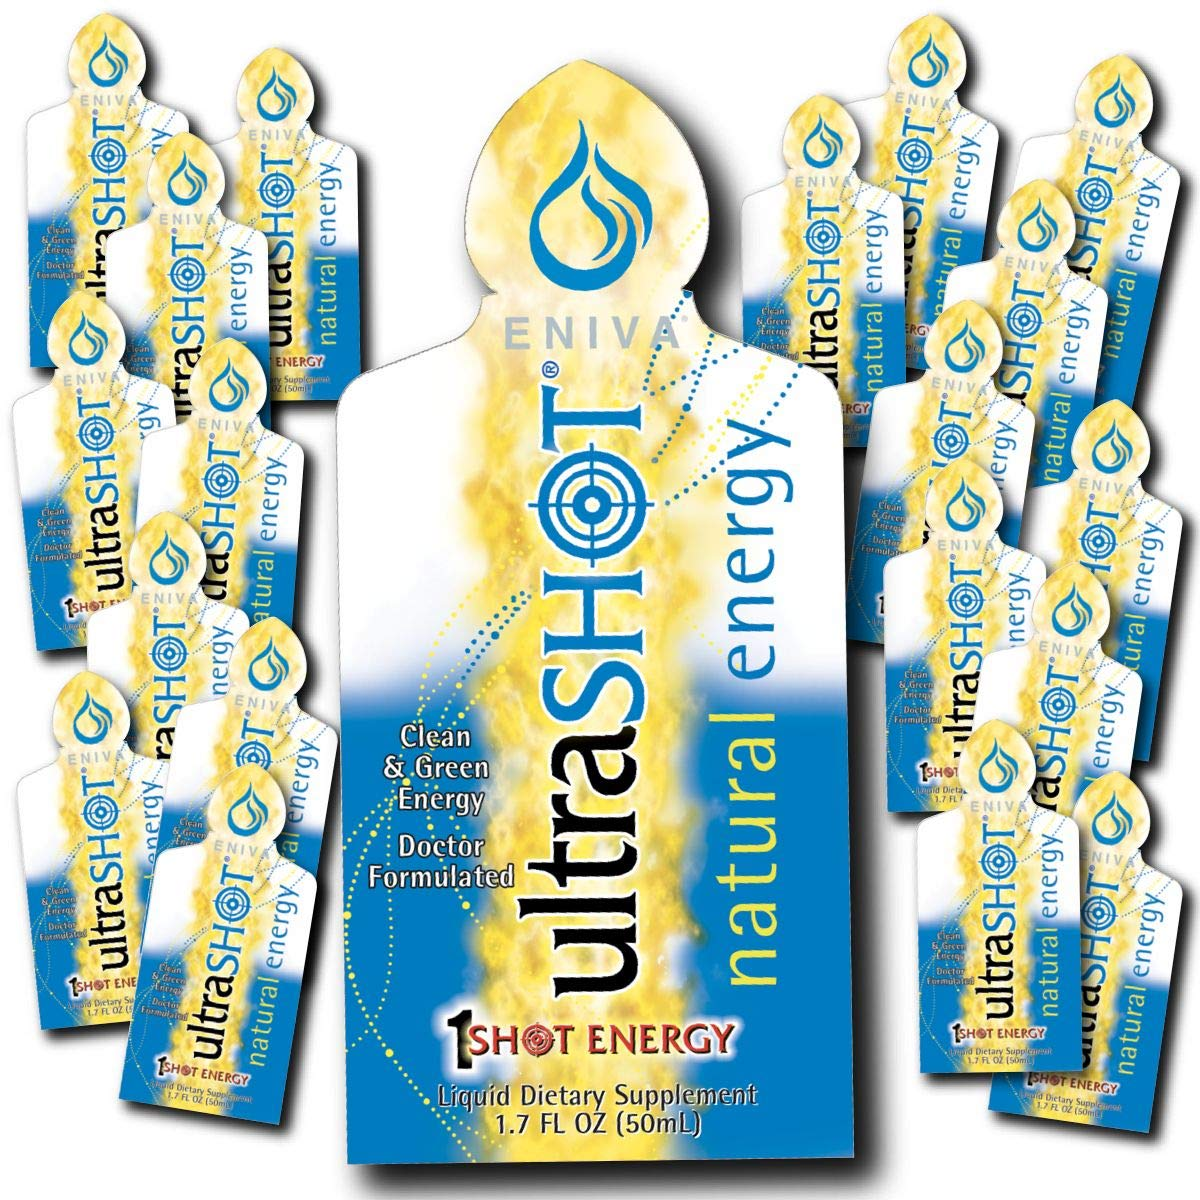 Coffee Replacement Coffee Alternative Ultrashot Healthy Energy by Eniva Dr. Formulated (20 on-The-go Packets per Box) by Eniva